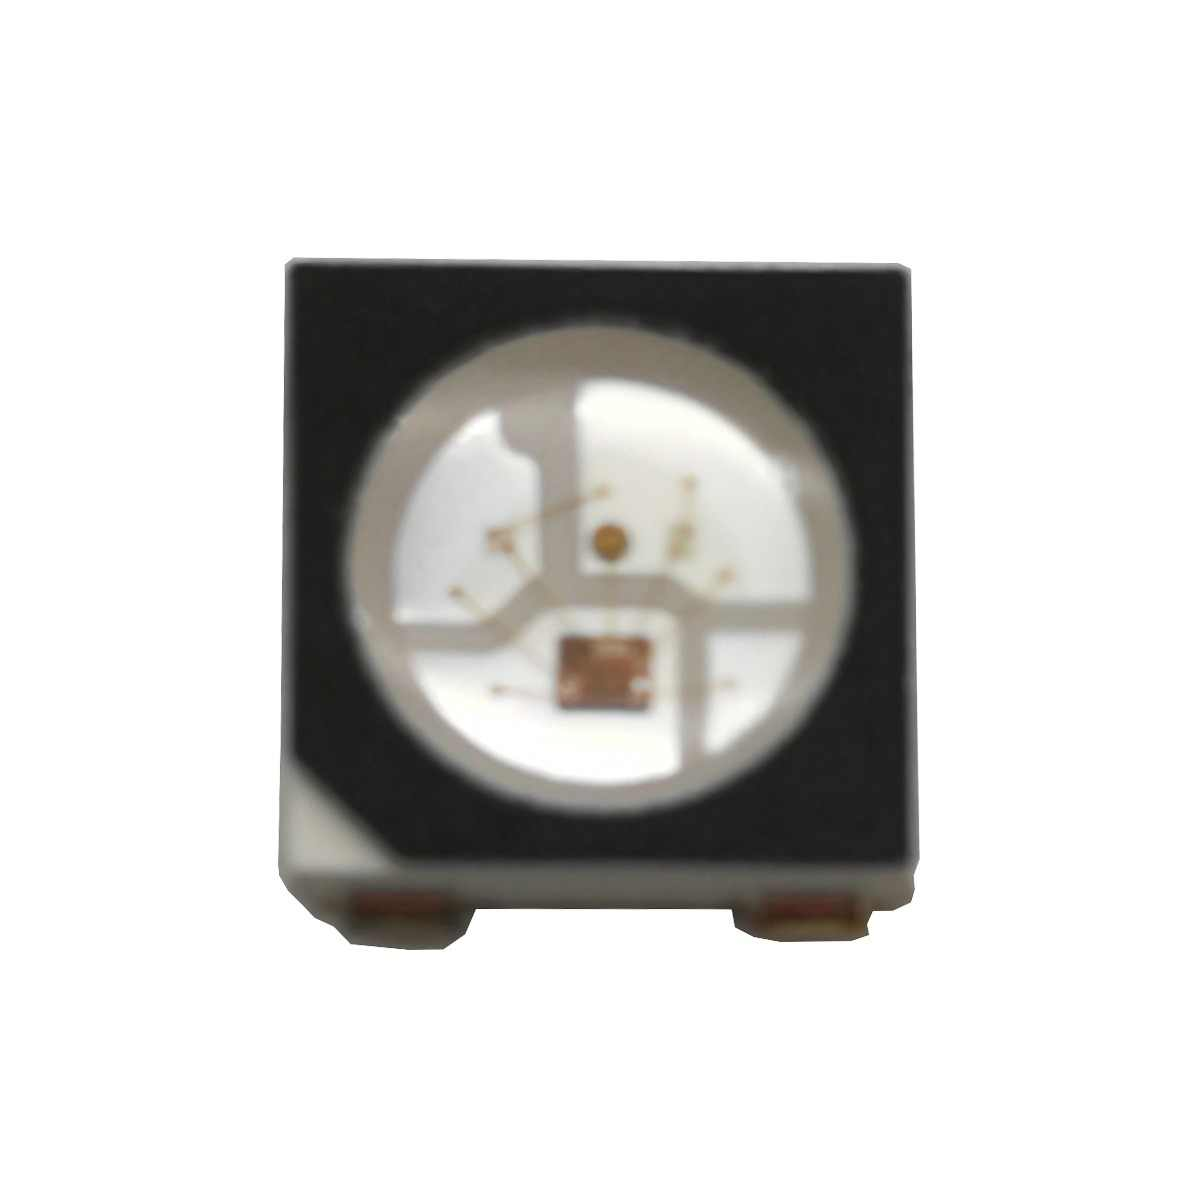 WS2812B LED Chip Built-in WS2811 ic 2812 10~1000pcs 5050 RGB SMD Black White Version WS2812 Individually Addressable Emitter 5V